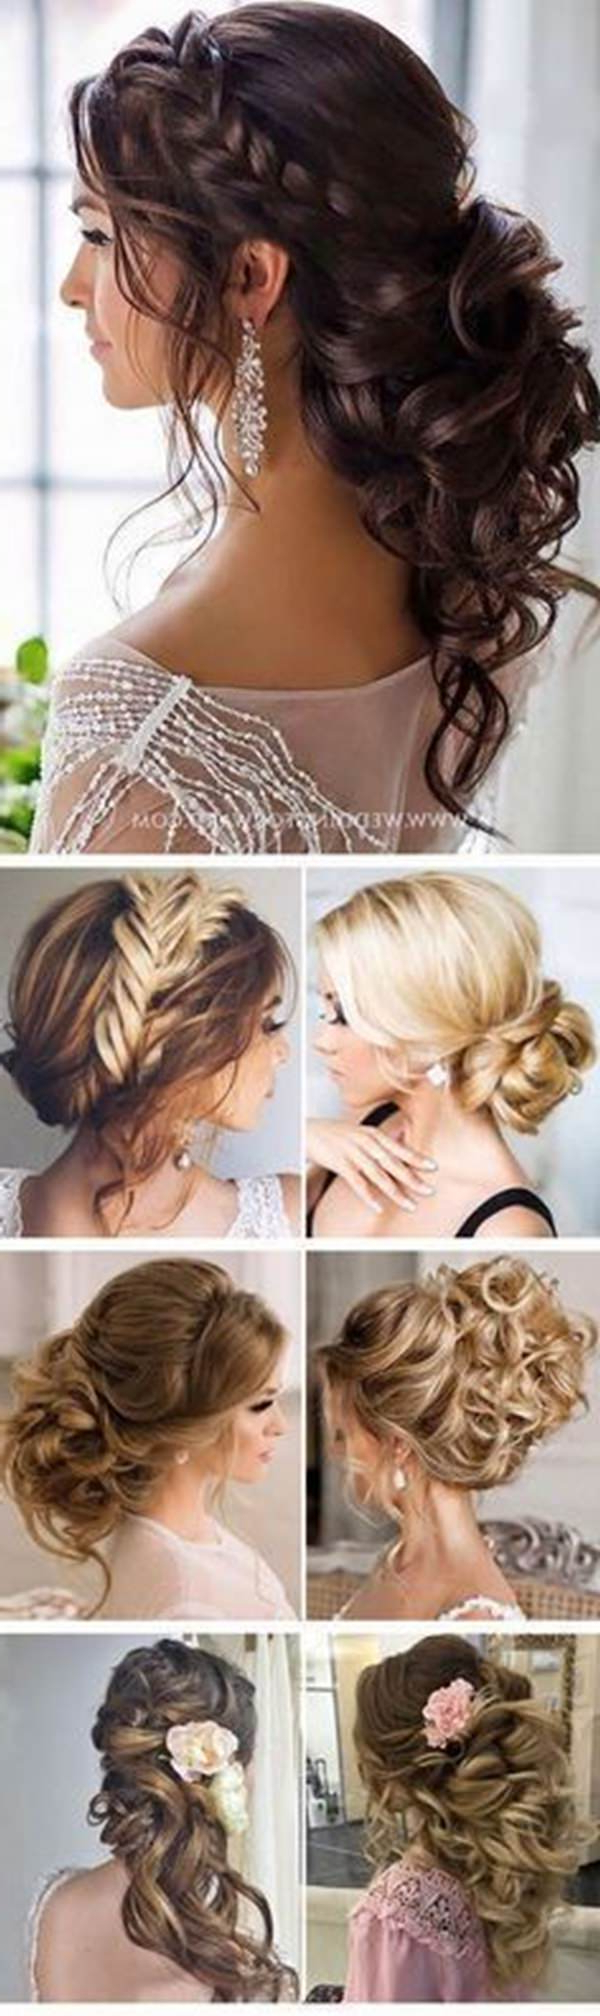 154 Updos For Long Hair Featuring Beautiful Braids And Buns For Most Popular Extra Thick Braided Bun Hairstyles (Gallery 19 of 20)